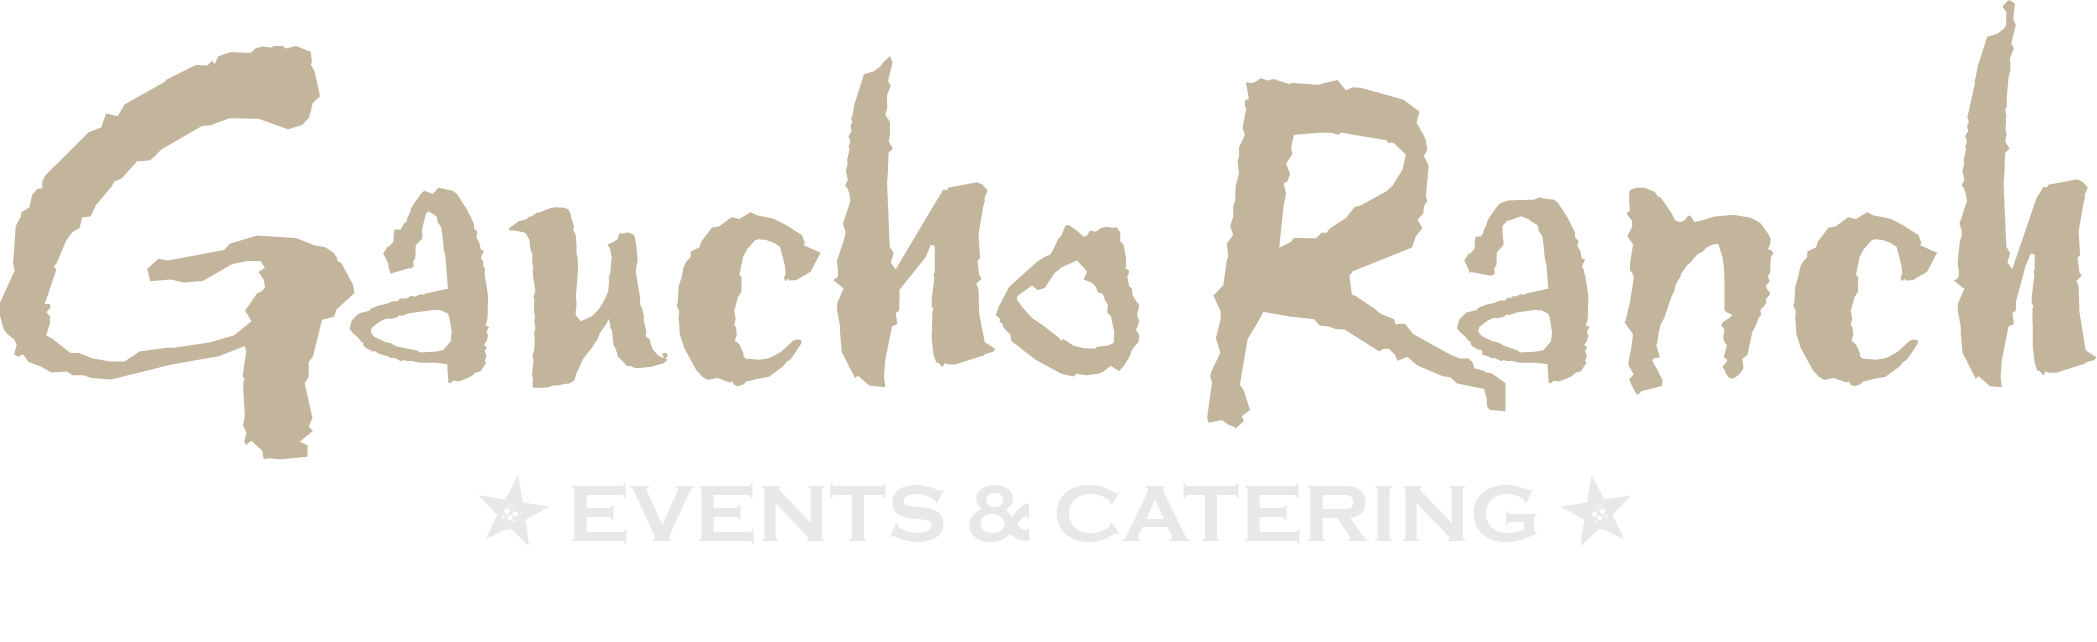 Gaucho Ranch Catering